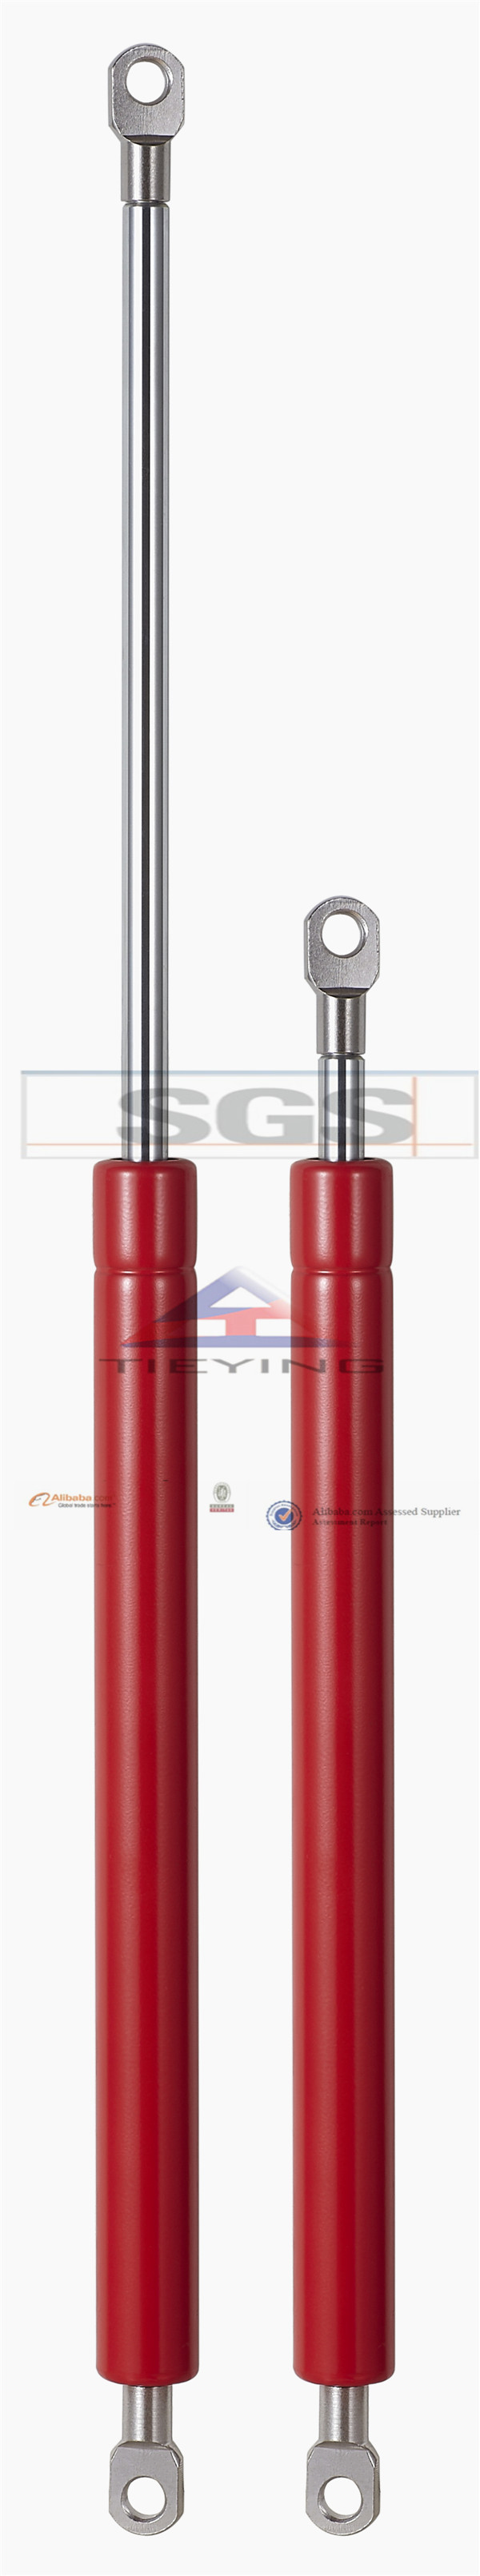 Cylinder Style Furniture Gas Struts For Bed Gas Spring Lift Supports